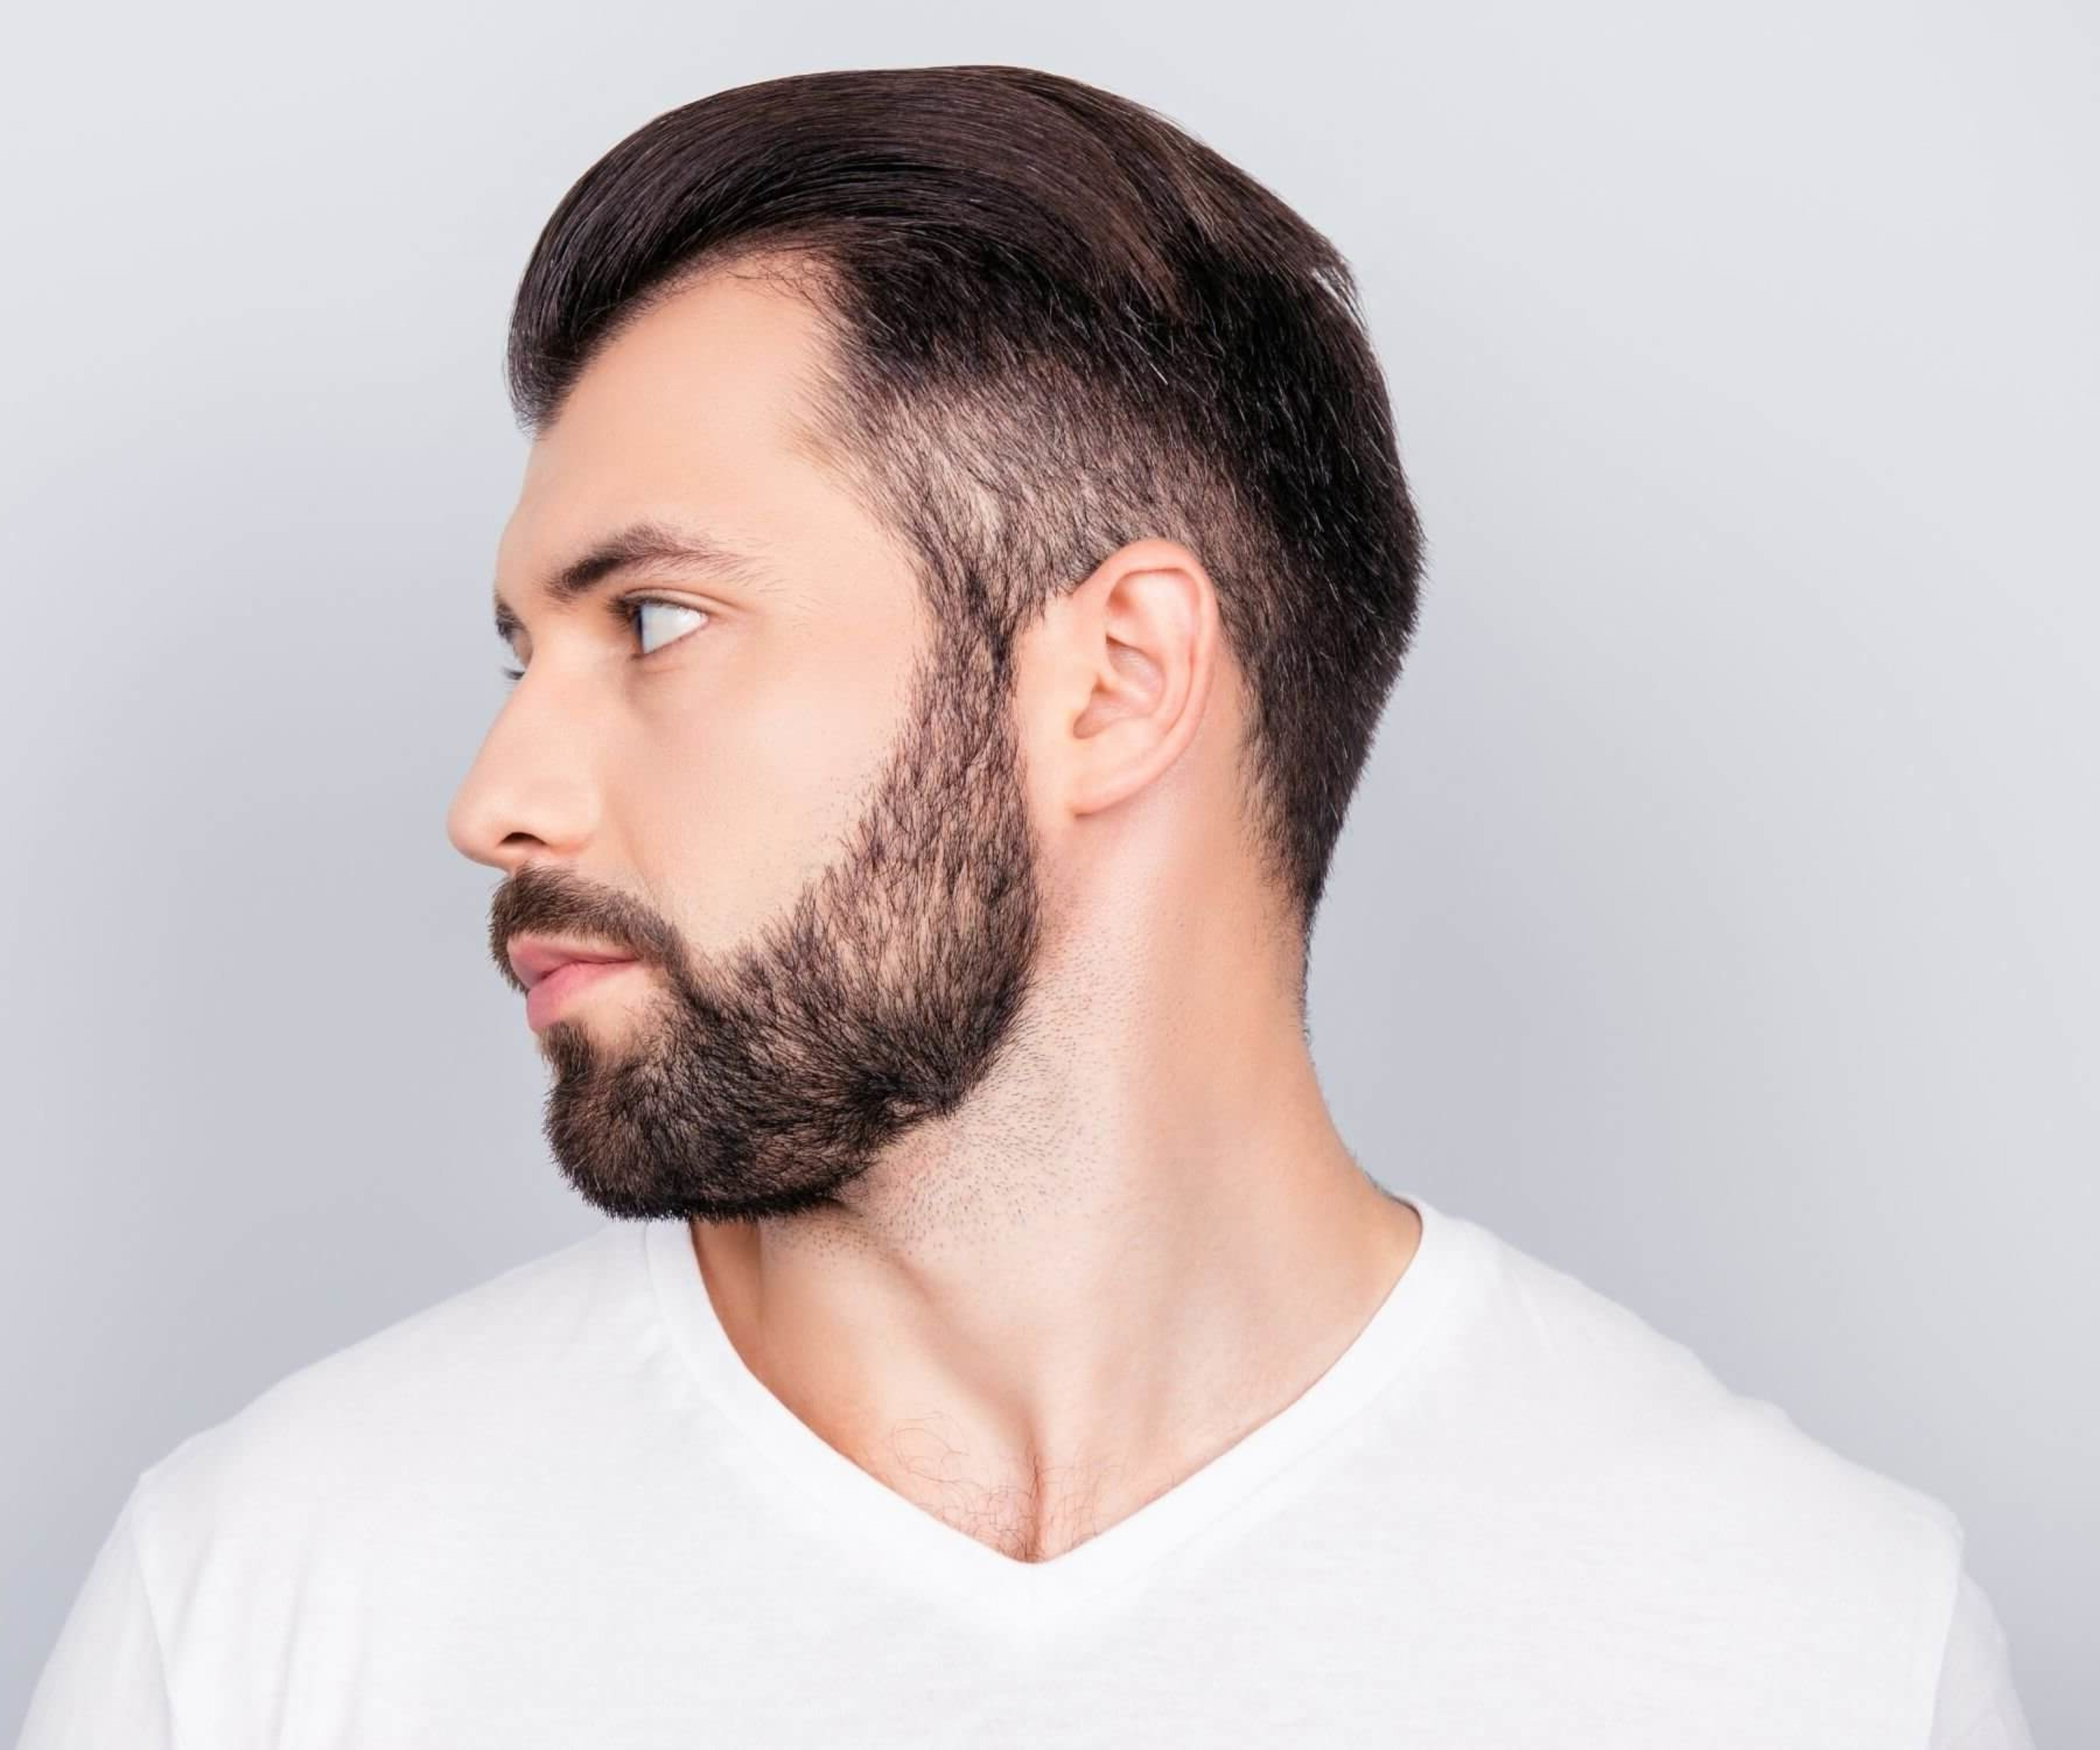 A short beard covering a neckline.